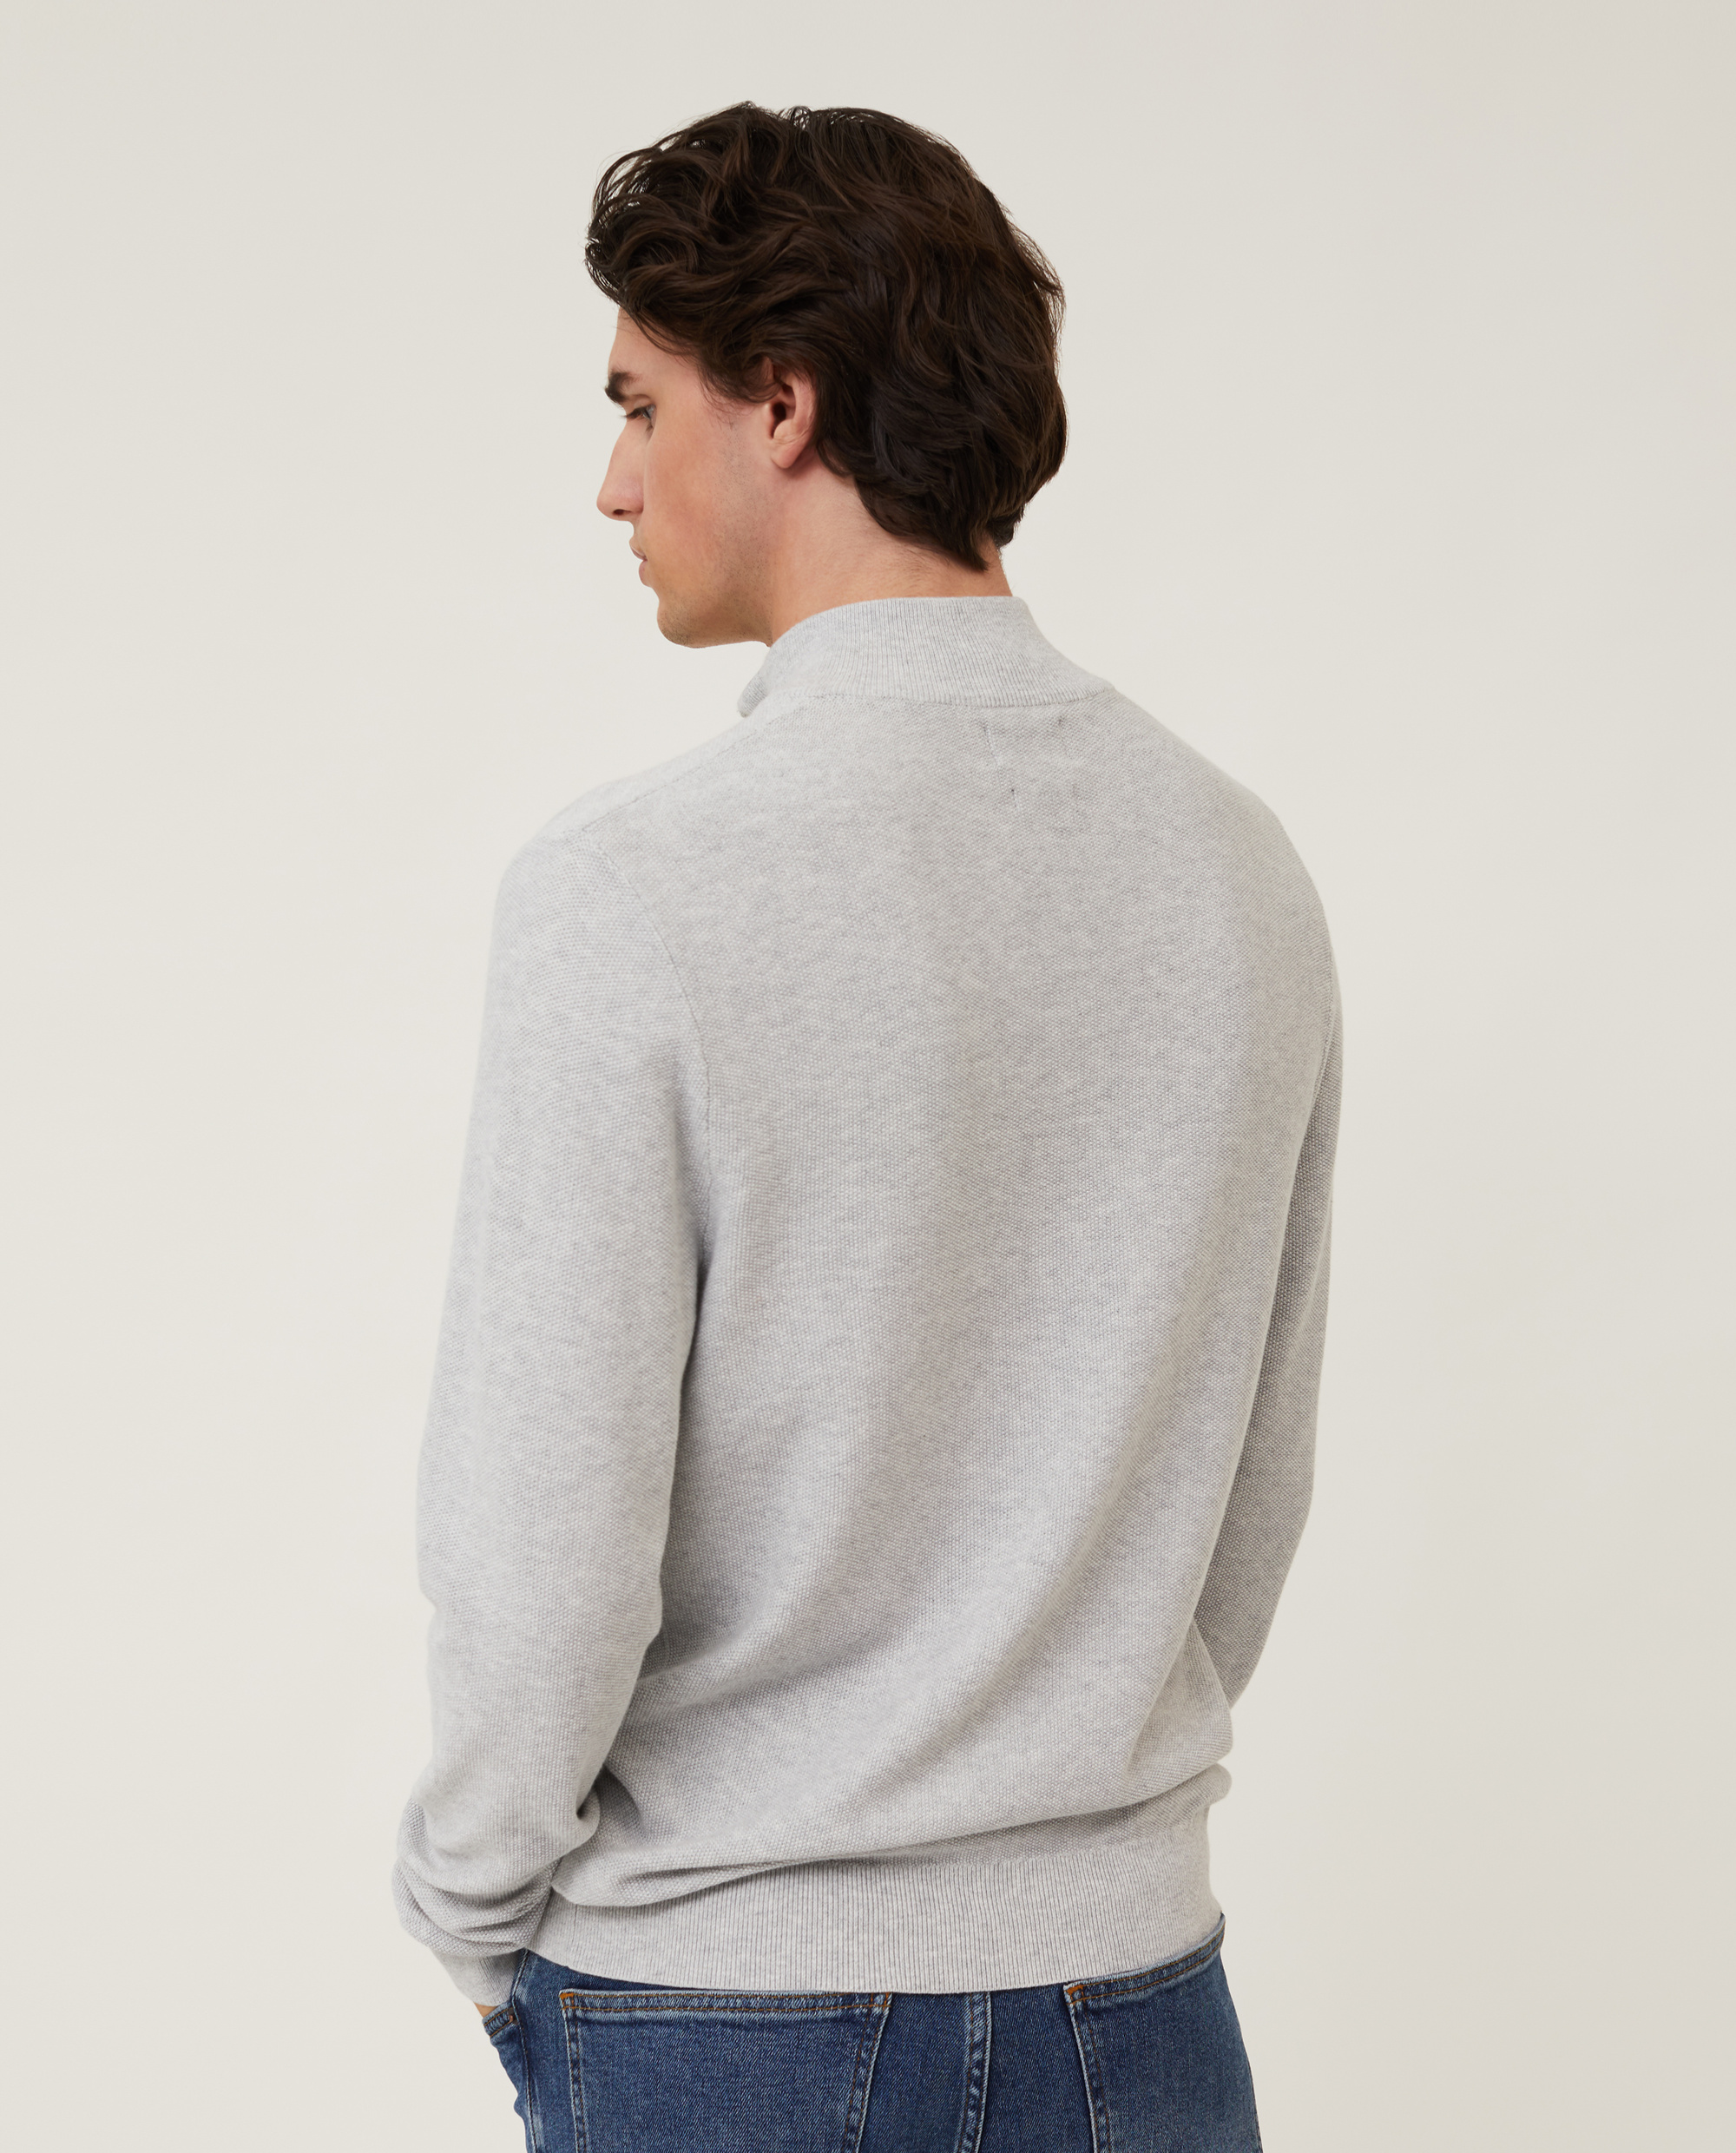 Clay Organic Cotton Half Zip Sweater, Light Gray Melange